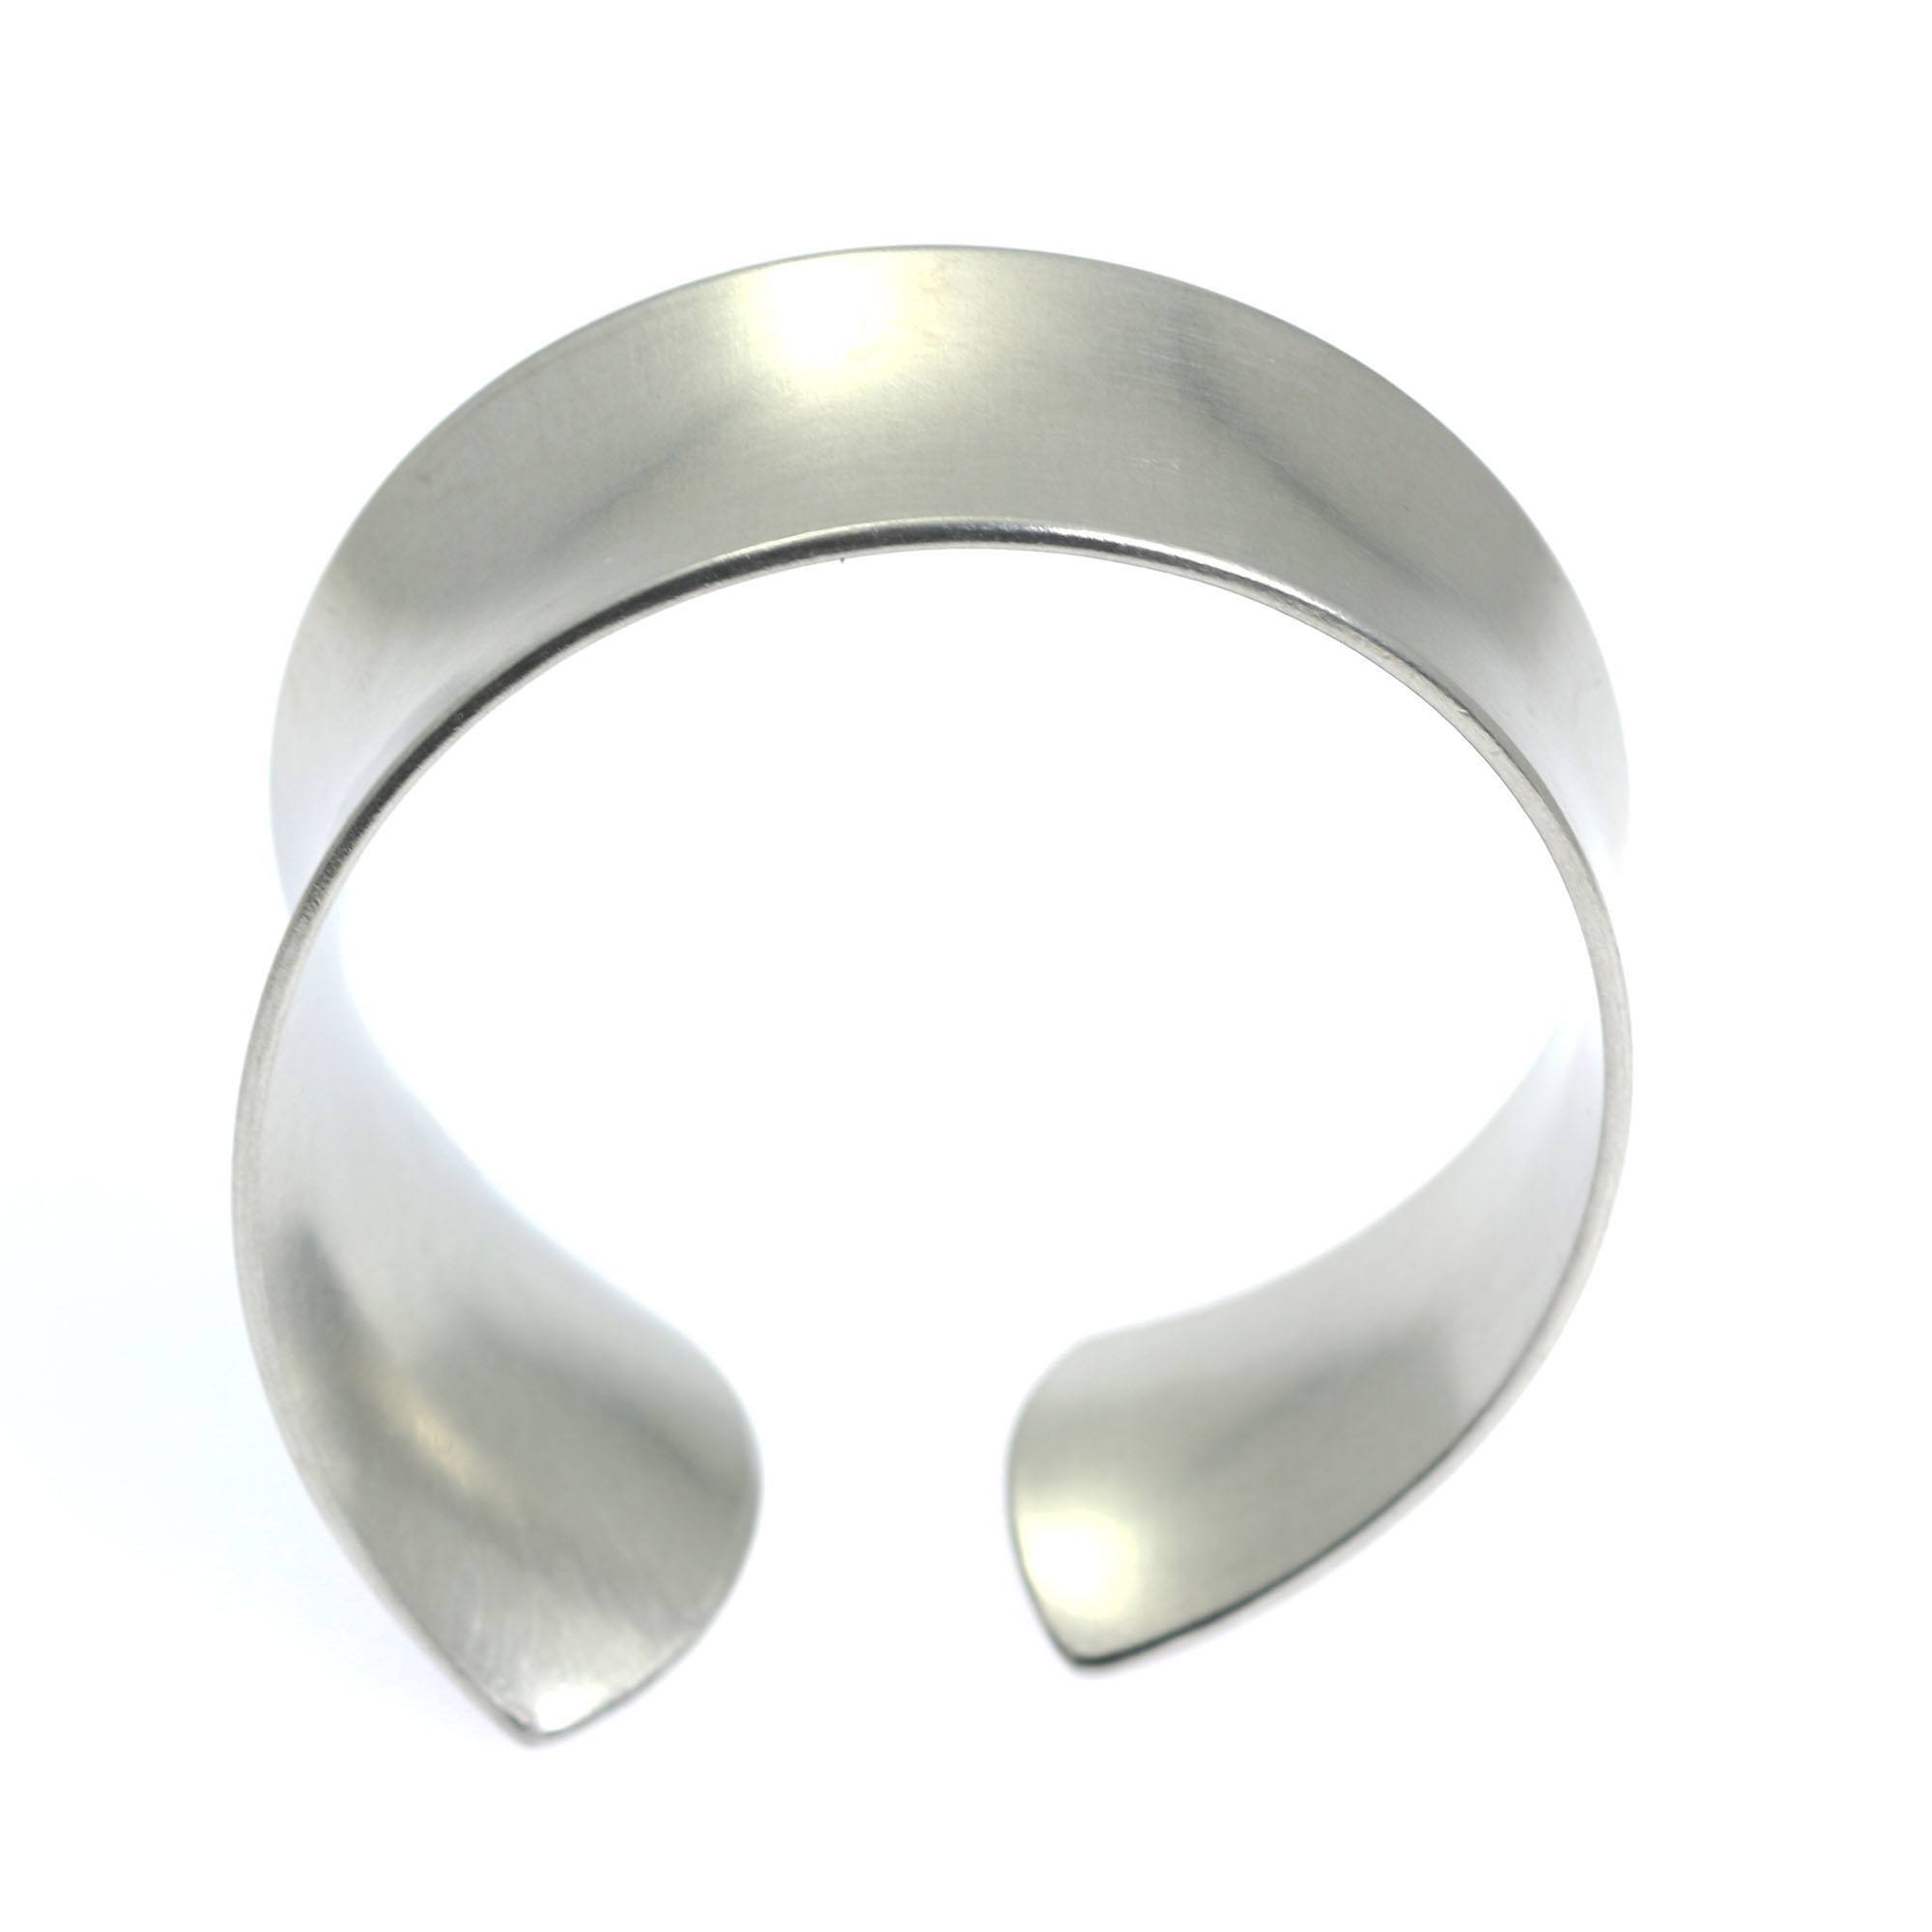 bracelet expensive brushed bangle aluminum tapered brana anticlastic john johnsbrana s bangles products